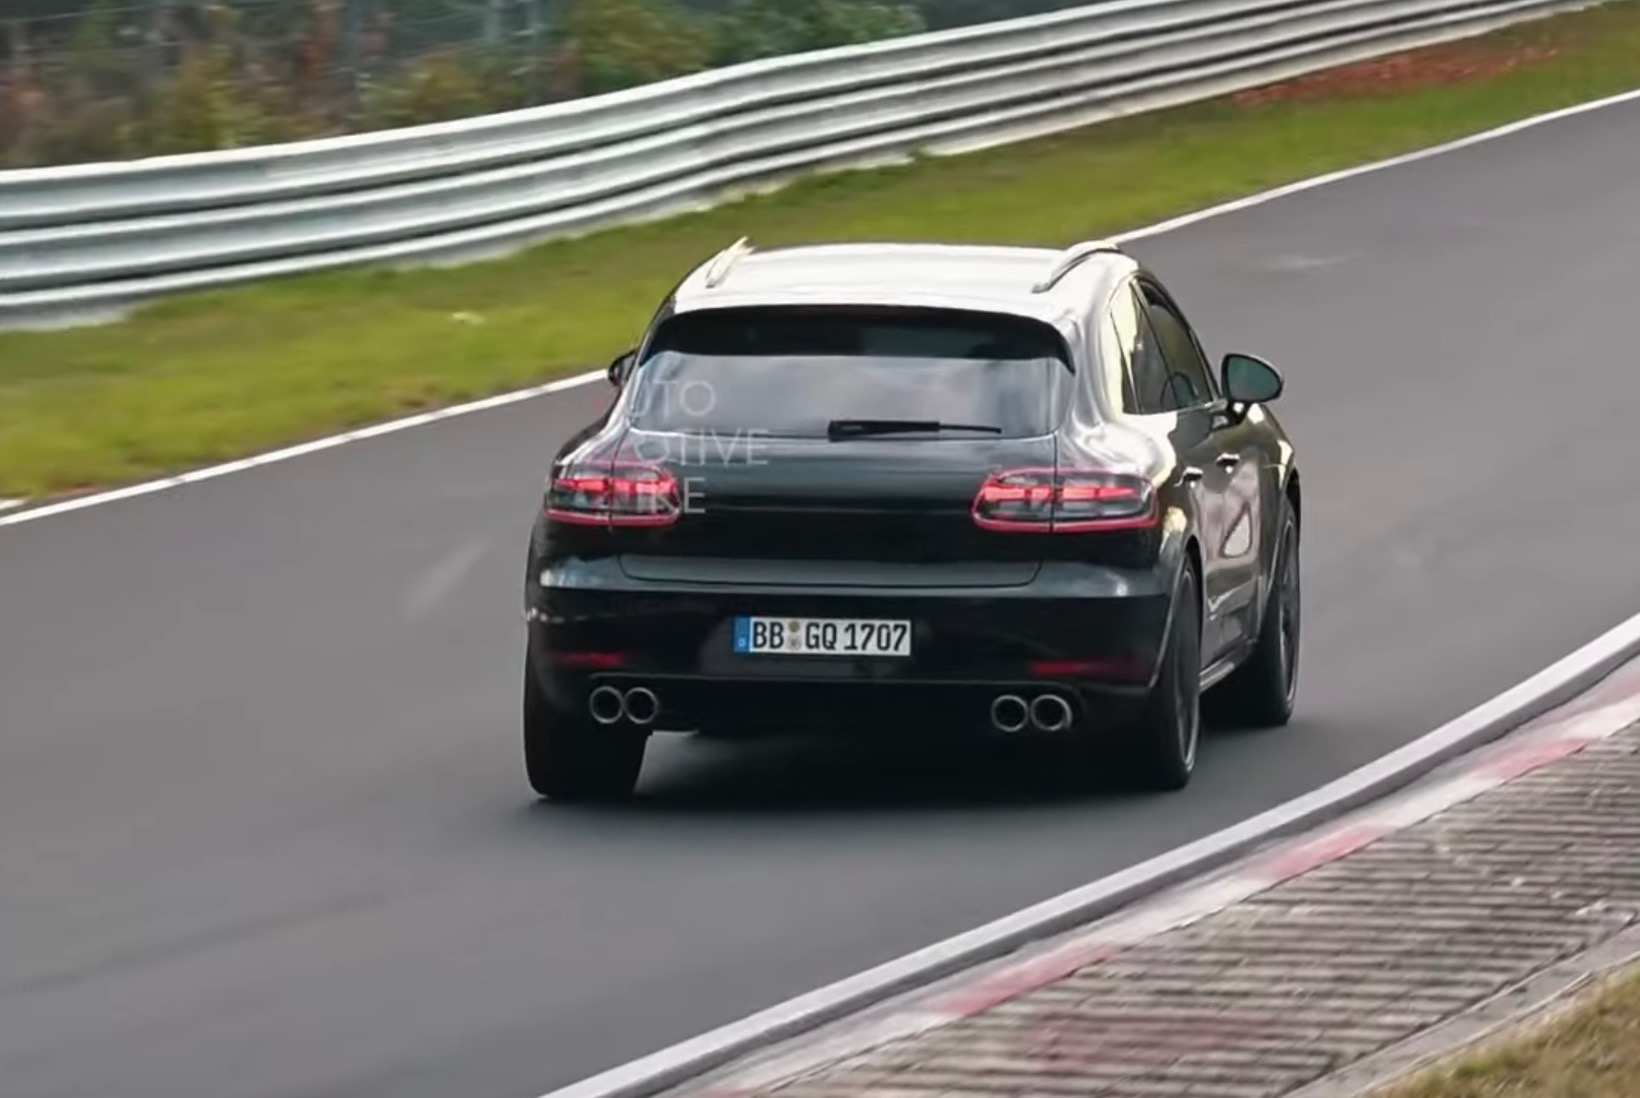 90 The 2020 Porsche Macan Turbo Speed Test